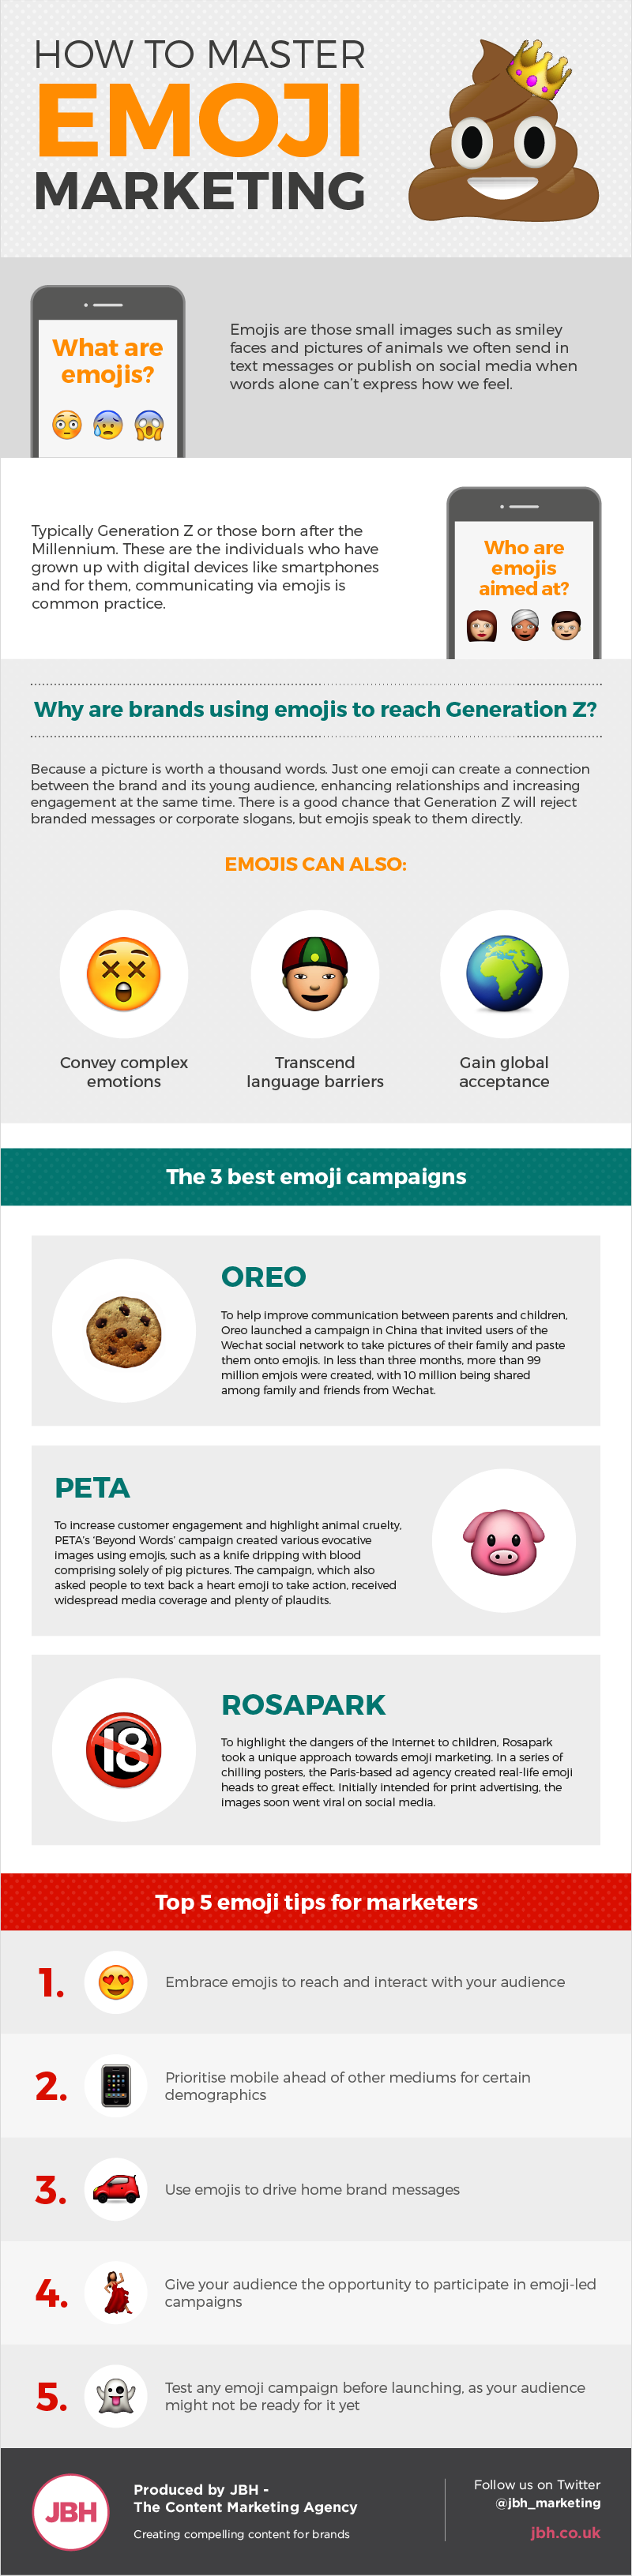 How to Master Emoji Marketing #infographic